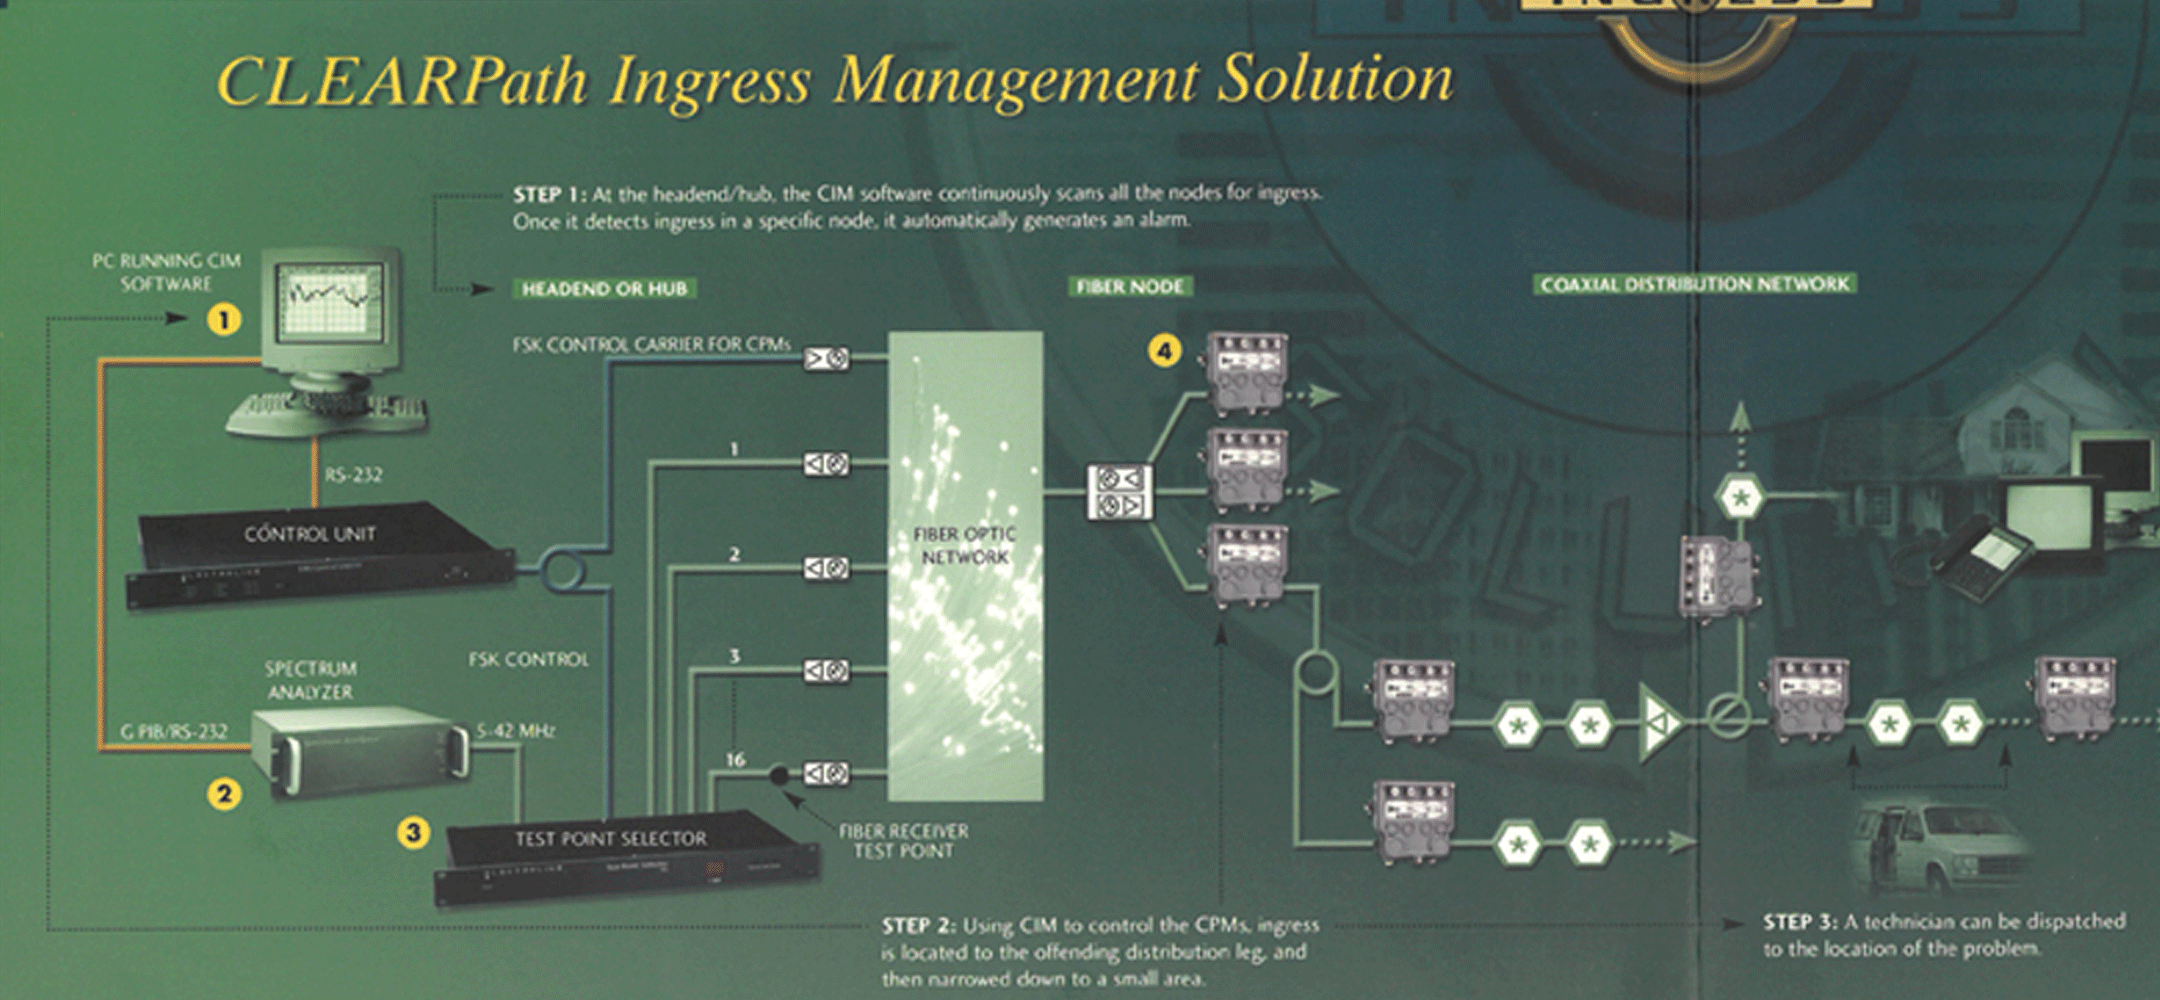 Pictures-for-Ingress-management-Solutions